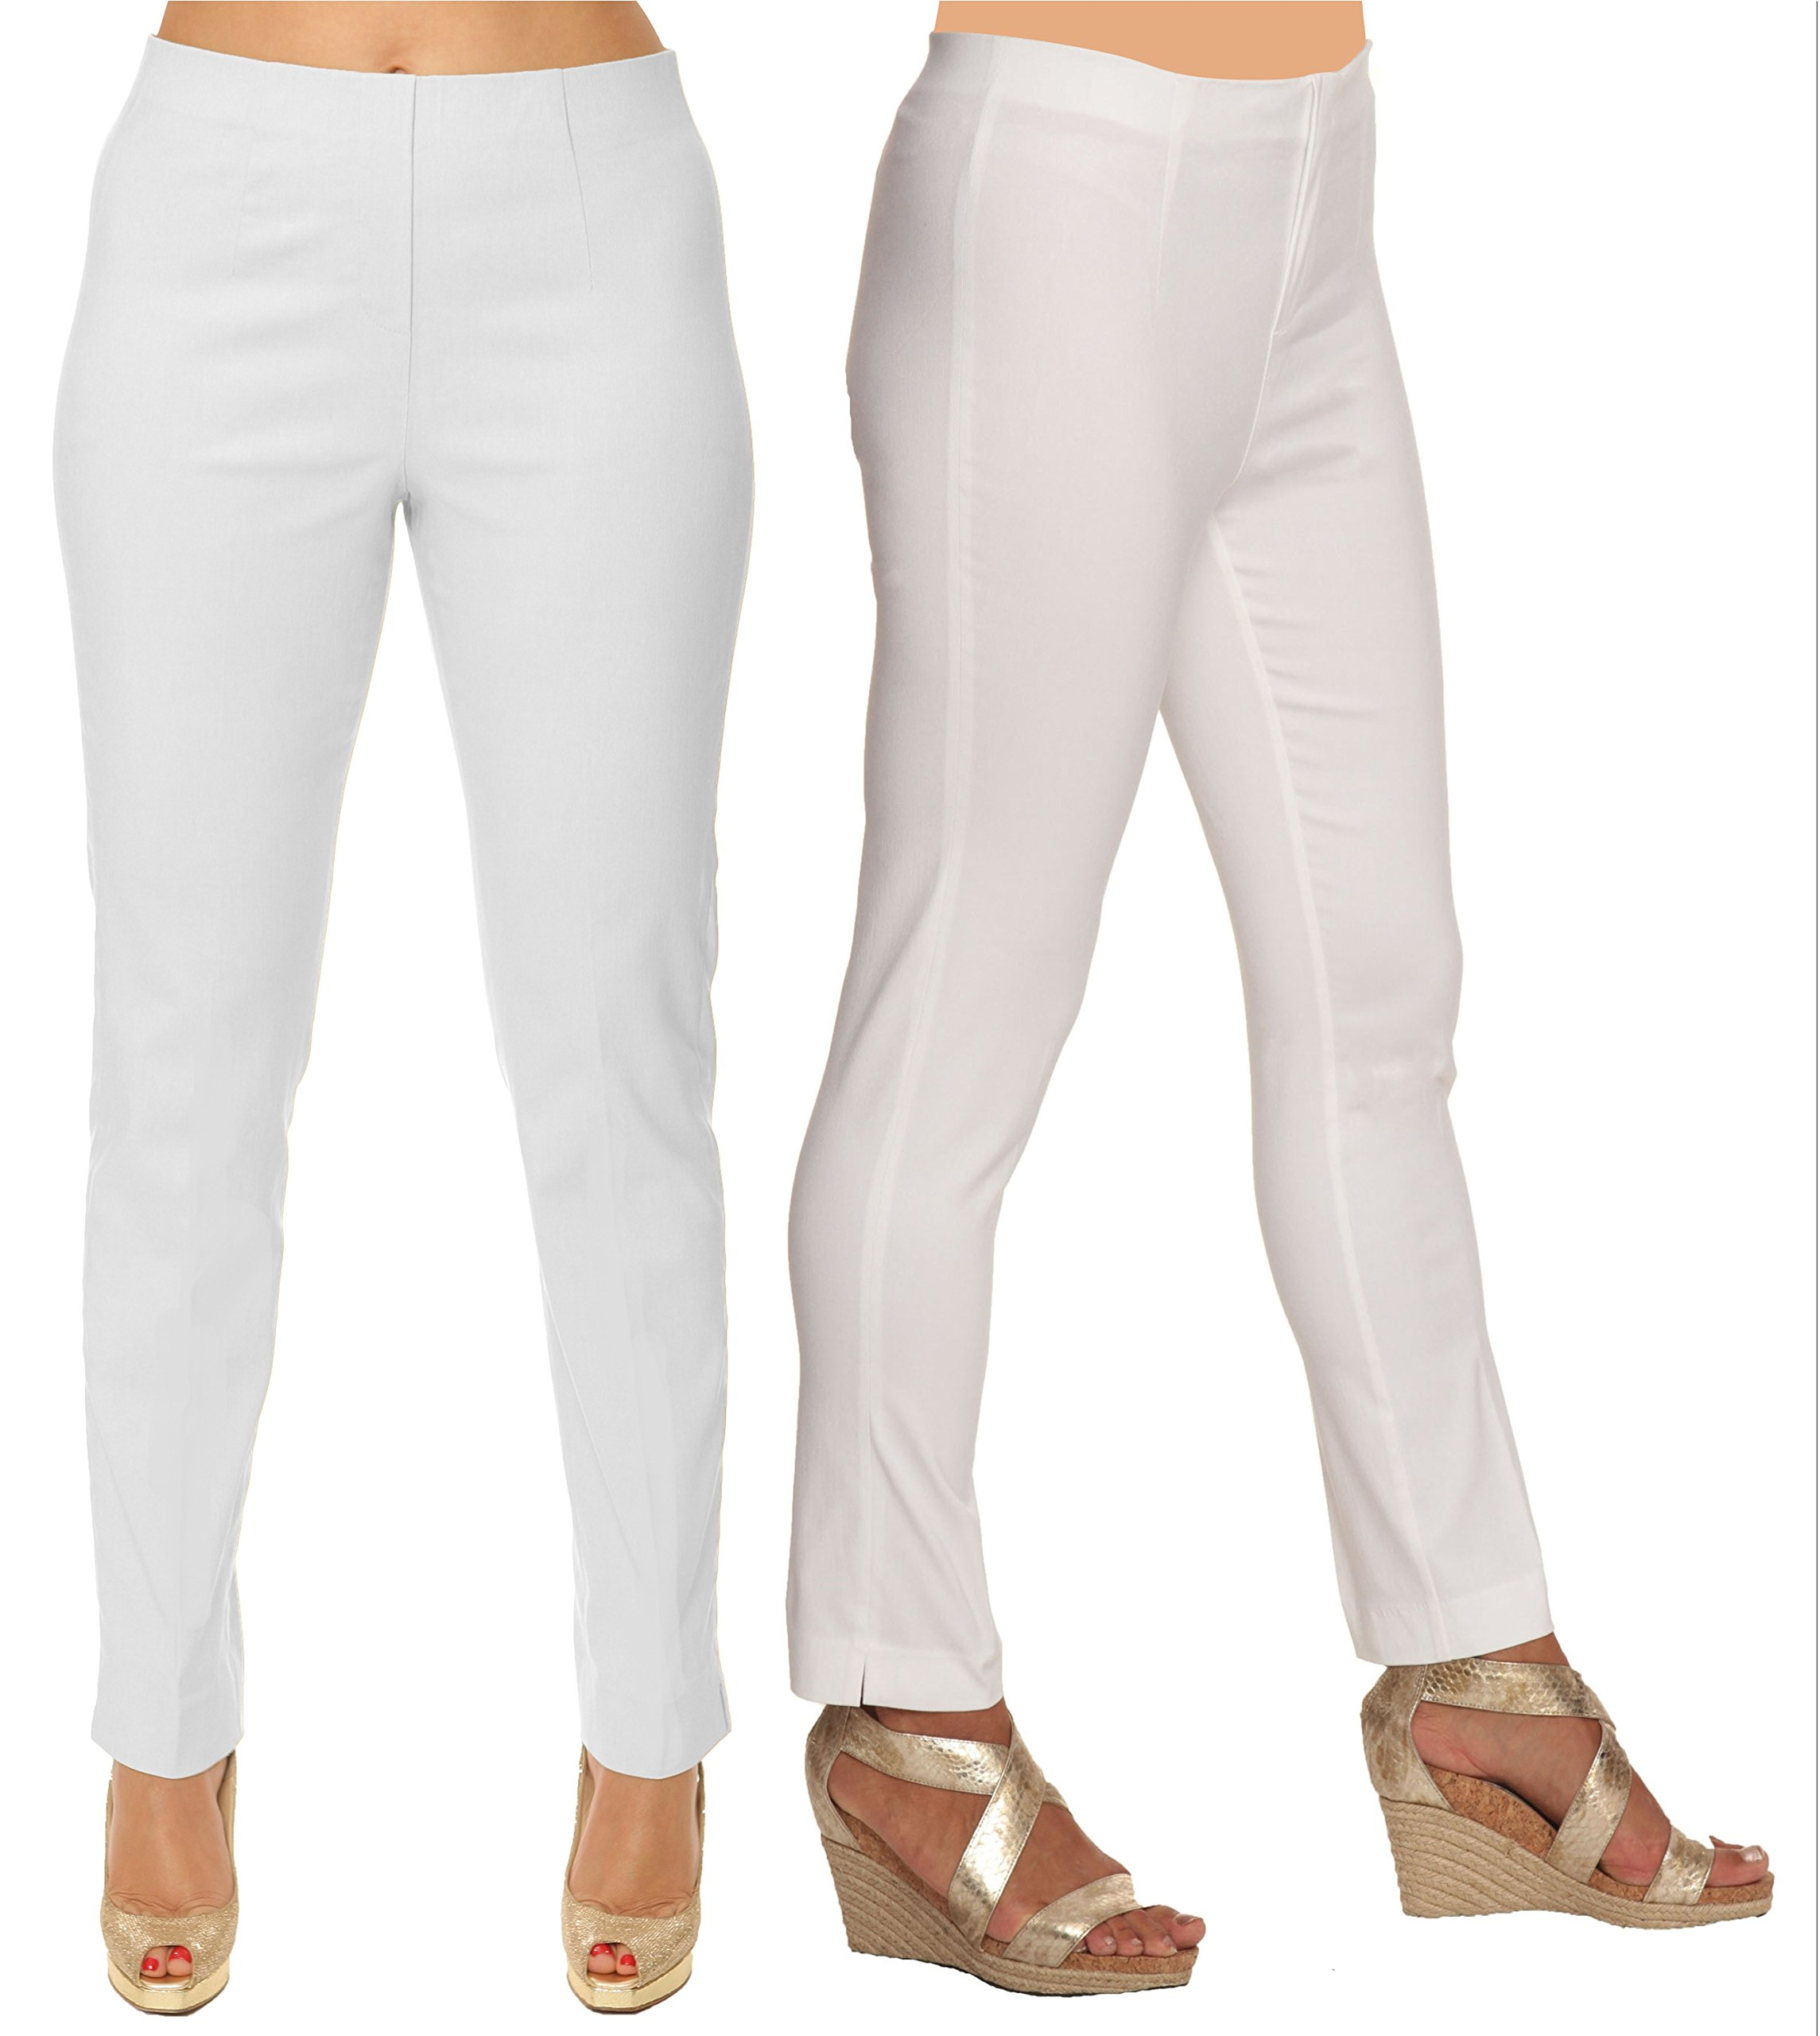 Lior Paris SASHA Essential Slim Fit Ankle Pant (12, White)